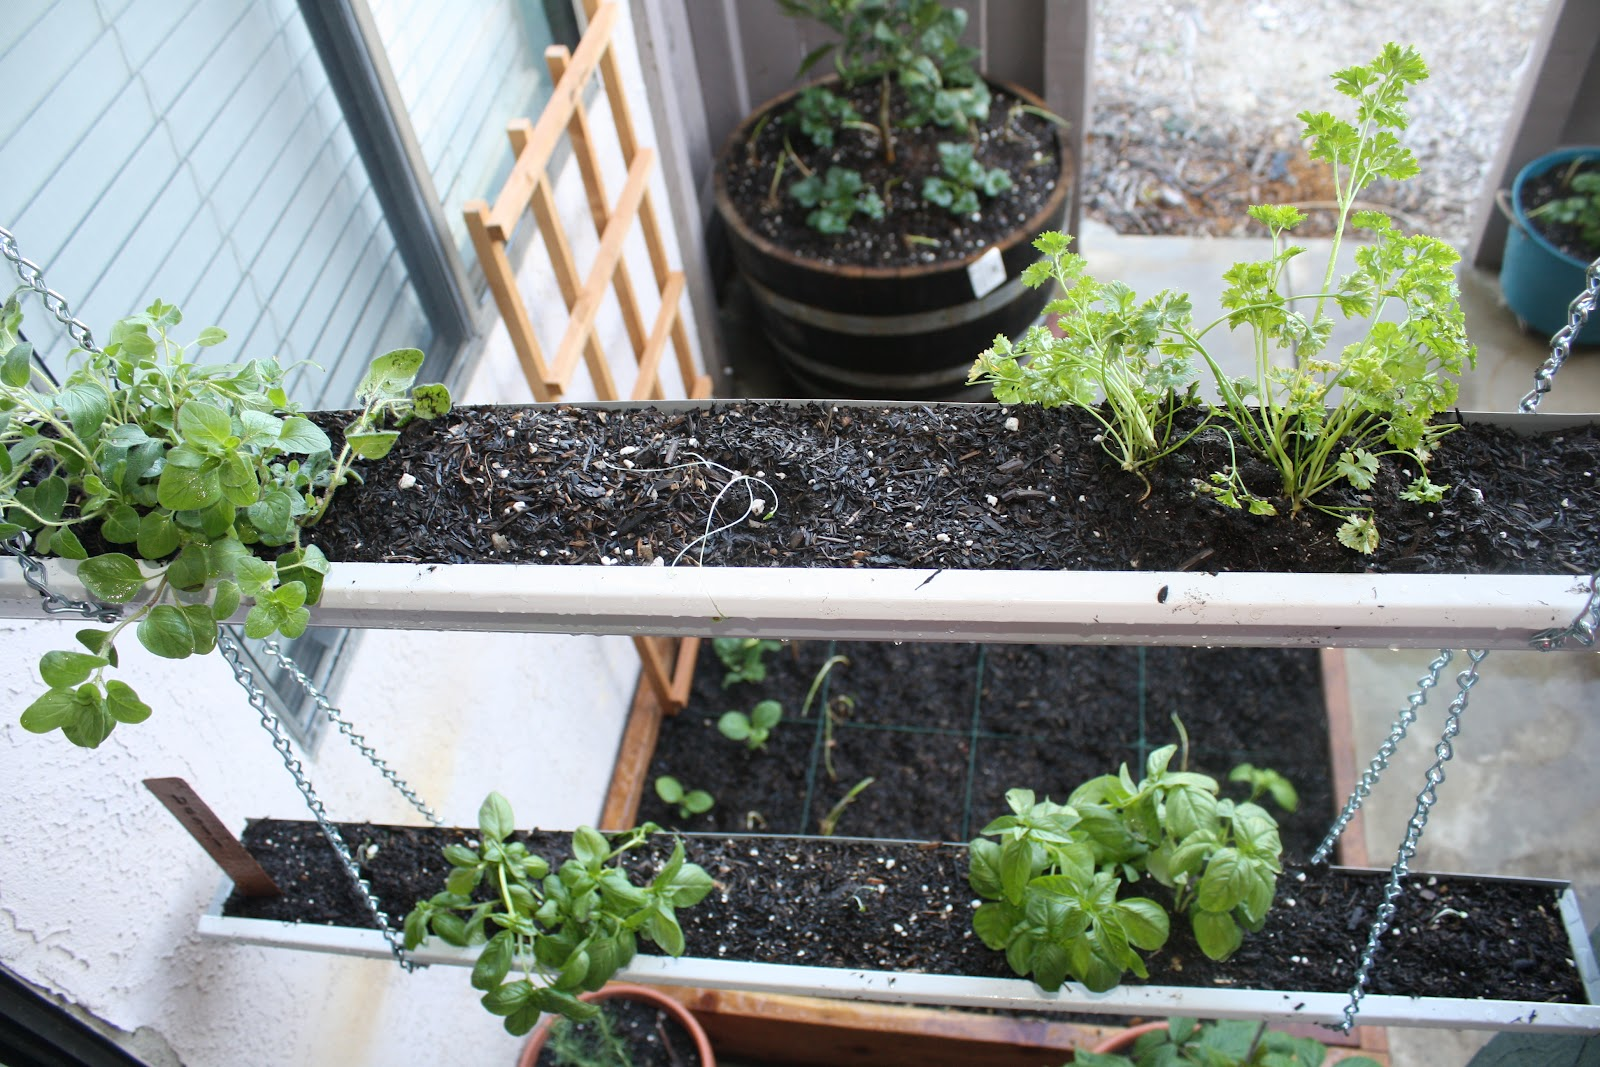 Kitchen Herb Garden Planter 13 Creative And Innovative Rain Gutter Garden Ideas The Self